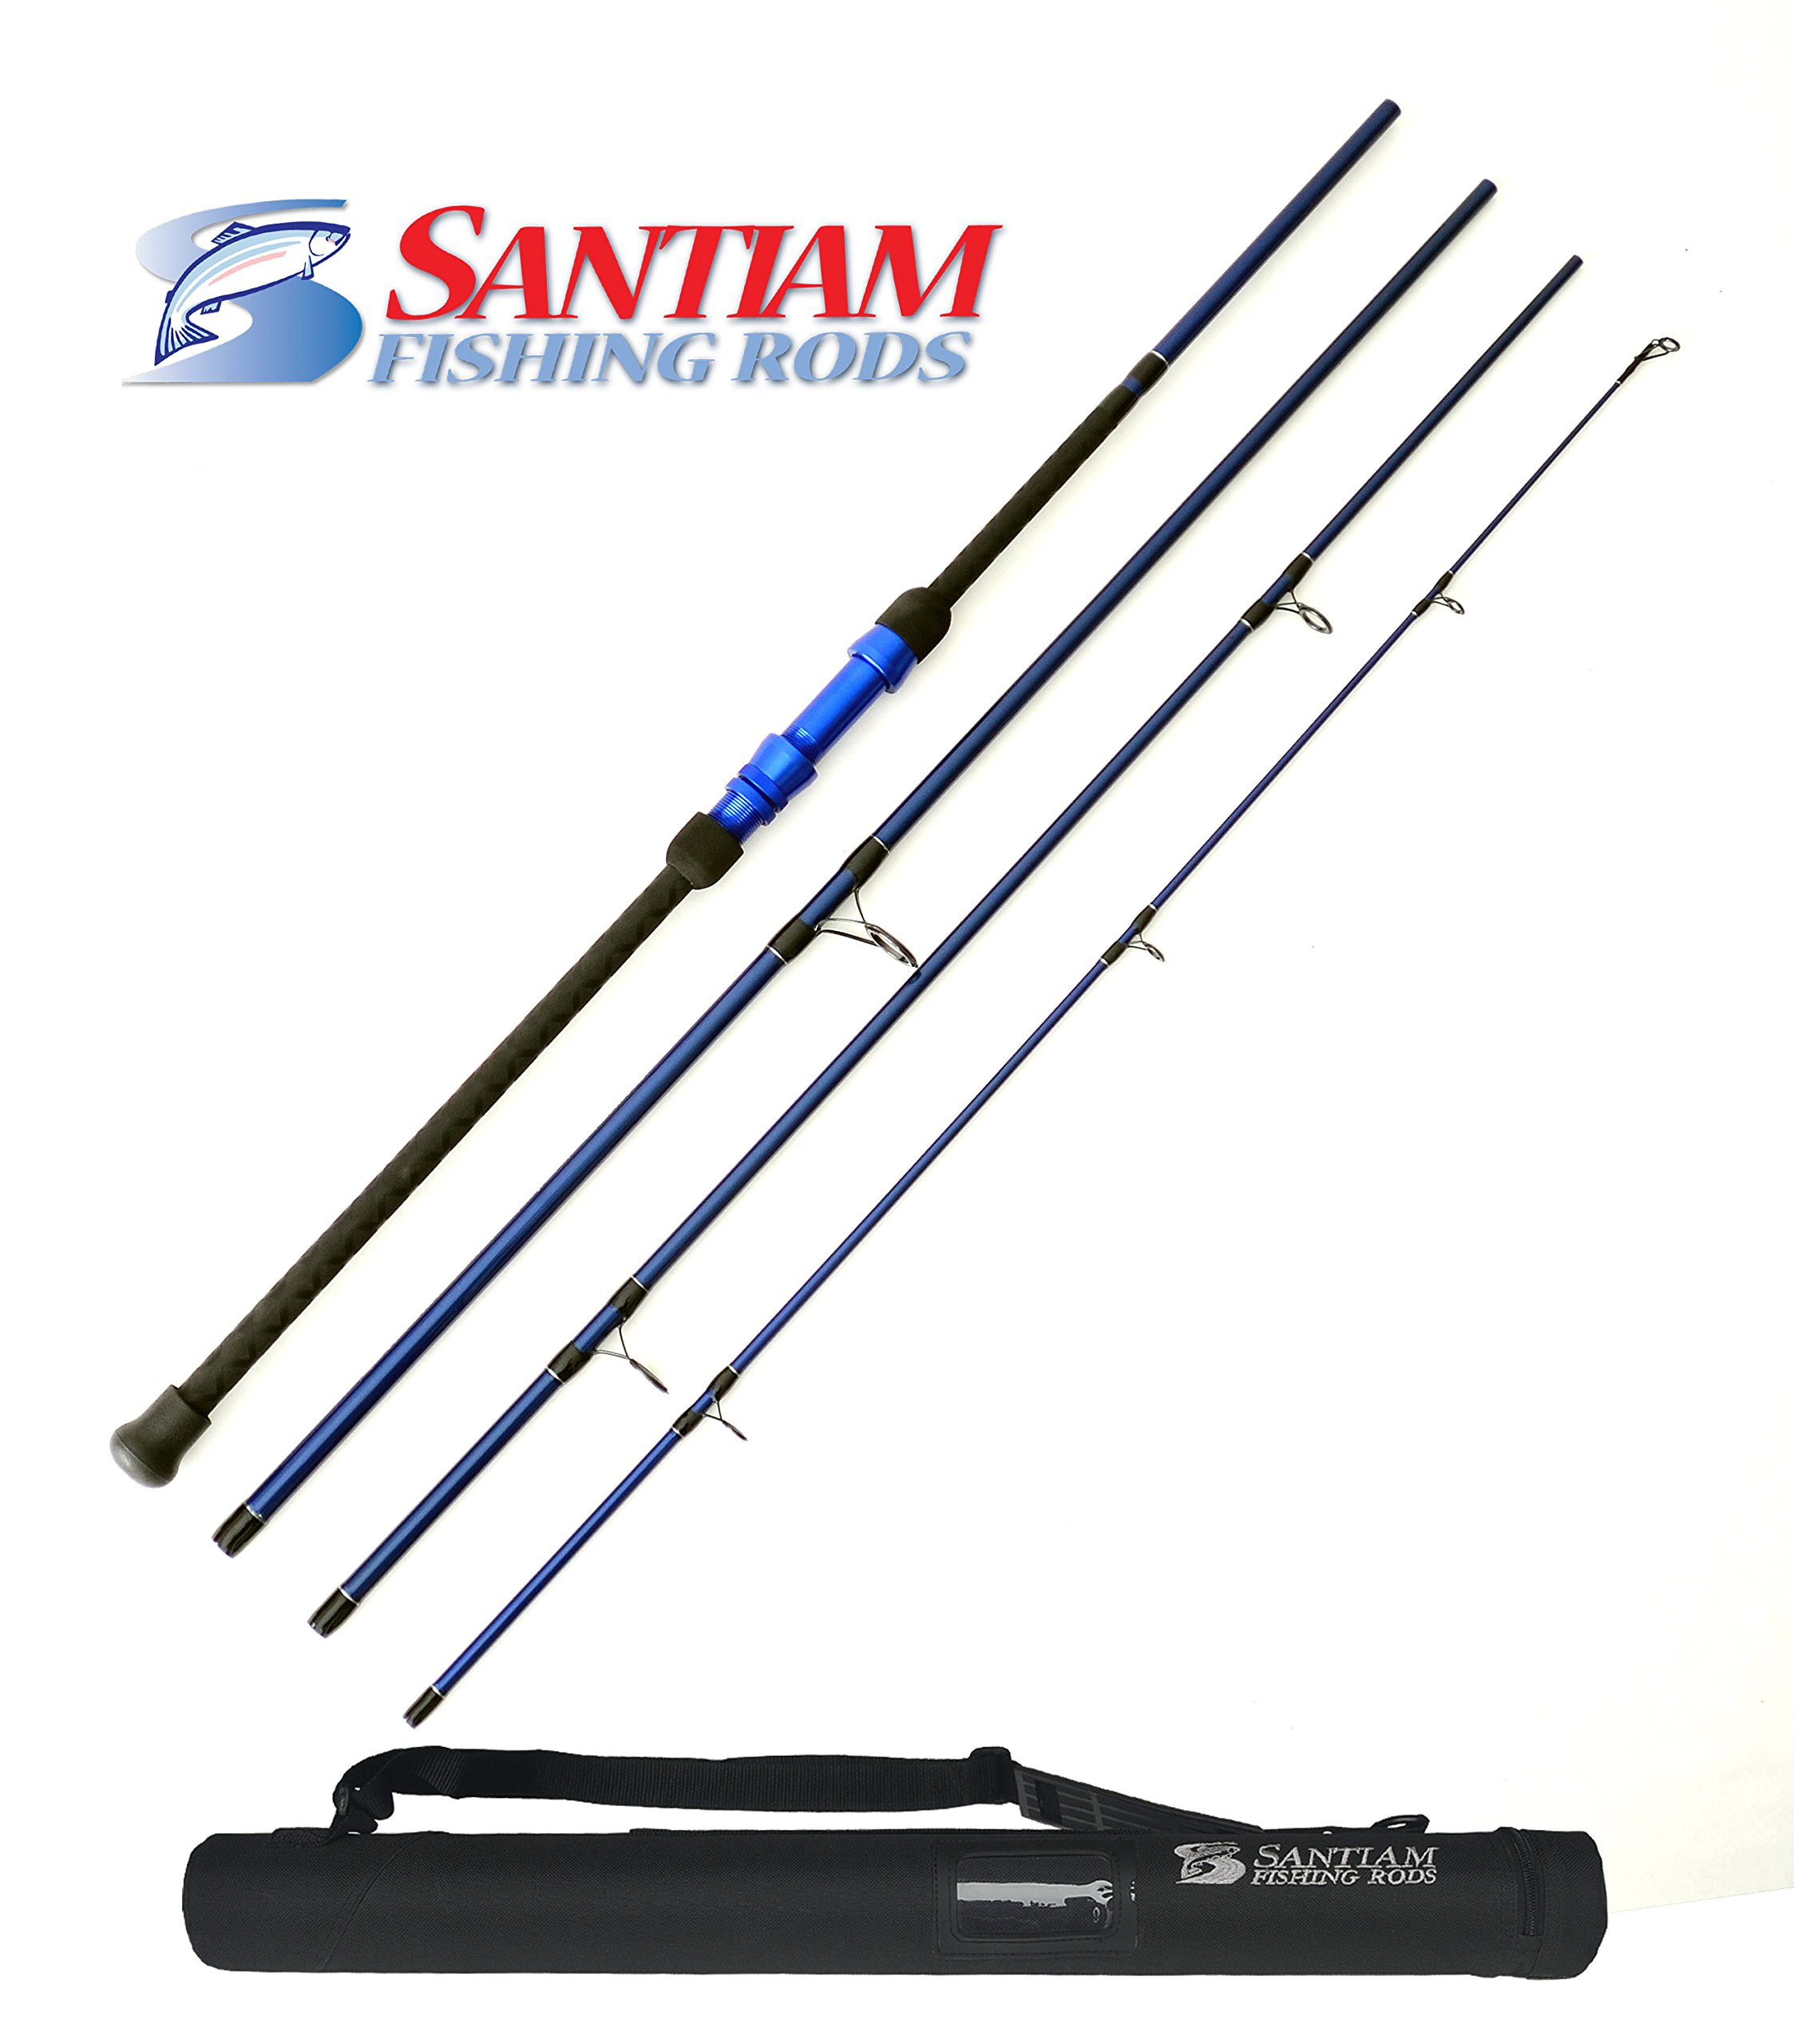 Santiam Fishing Rods Travel Rod 4 Piece 12' 17-40lb Surf Rod